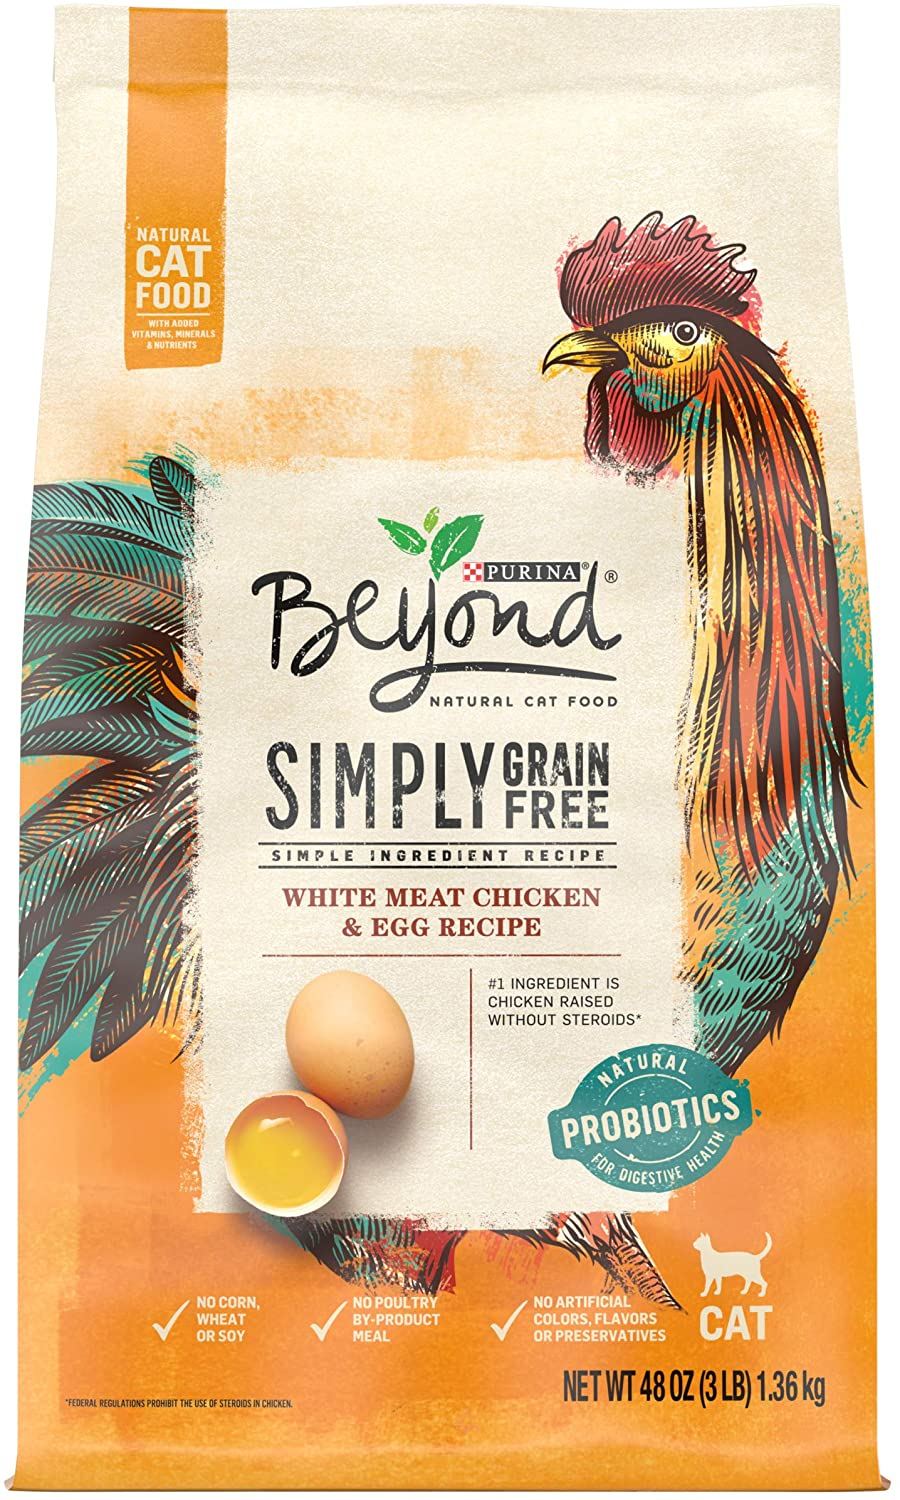 Beyond Simply Grain-Free White Meat Chicken & Egg Recipe